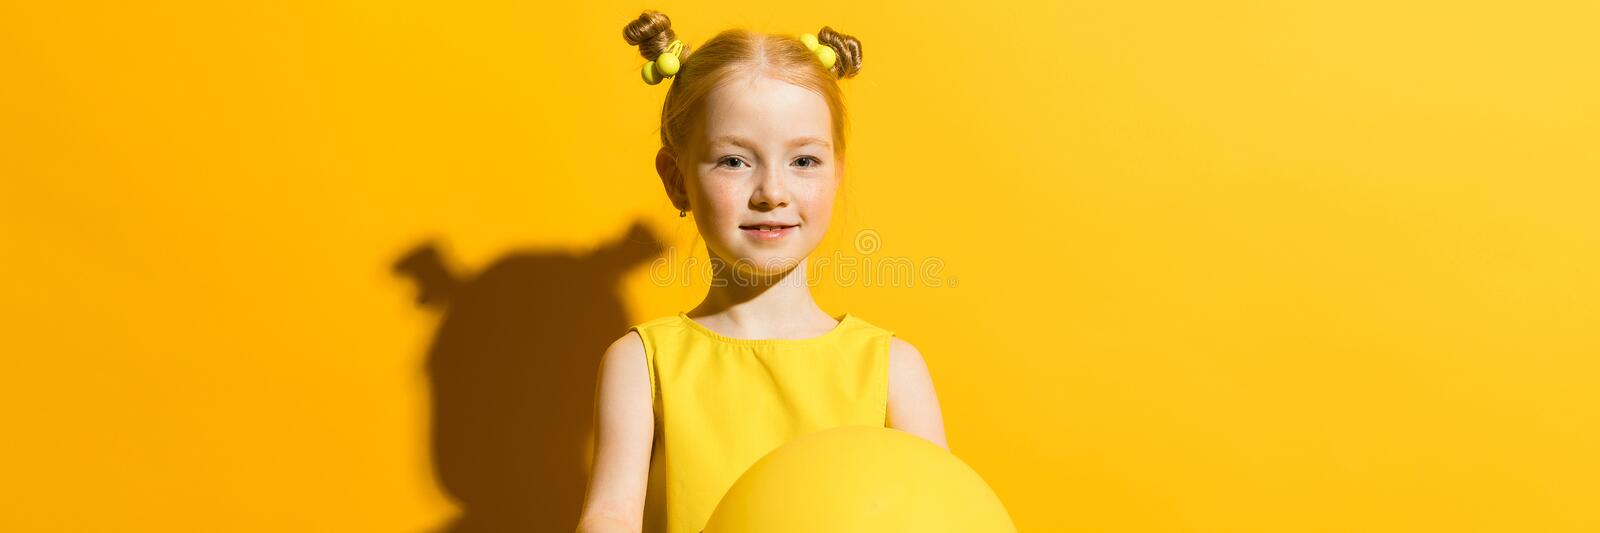 Girl with red hair on a yellow background. The girl is holding a yellow air balloon. stock image